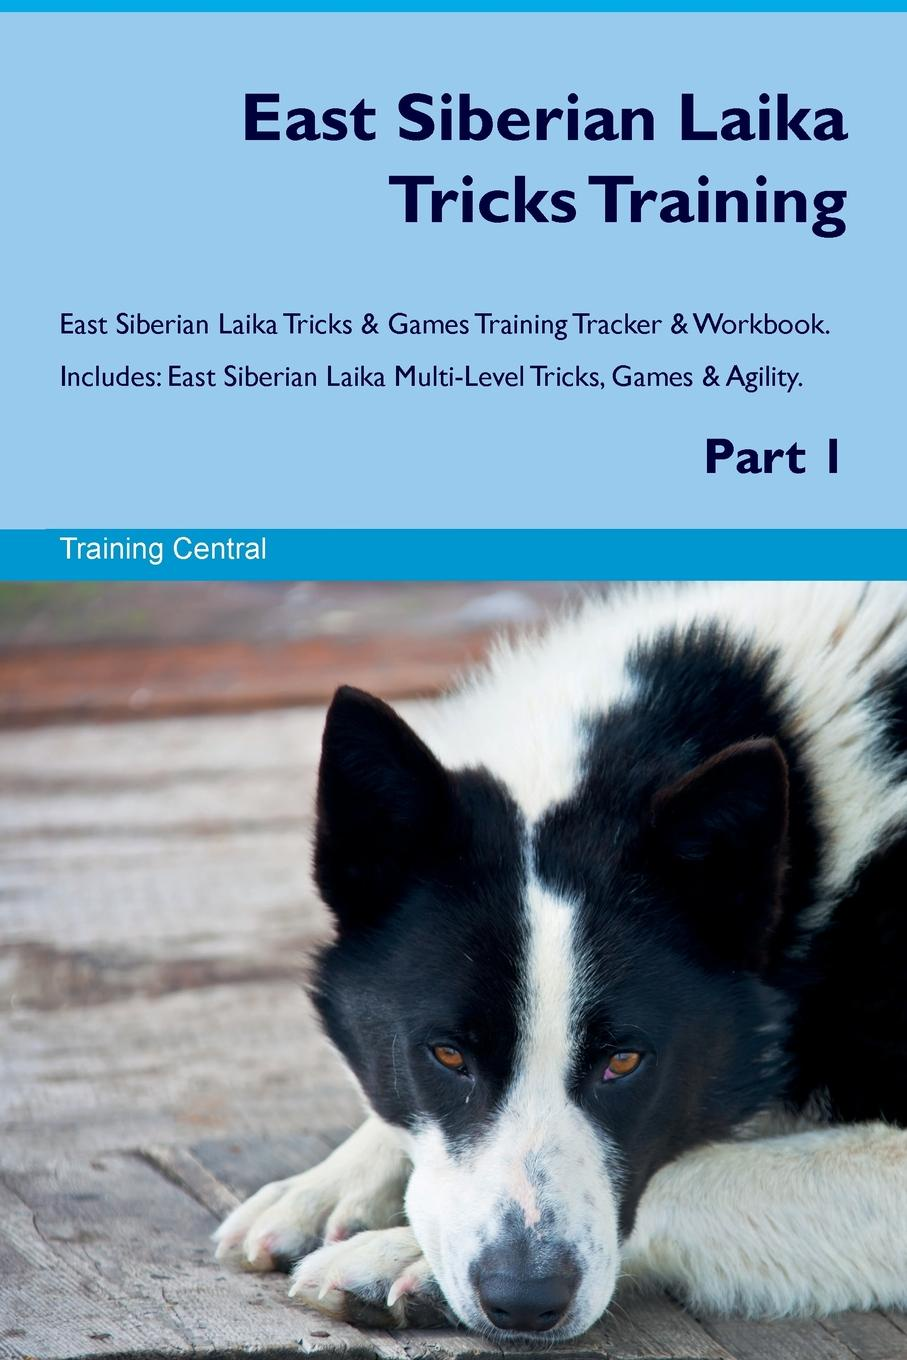 Training Central East Siberian Laika Tricks Training East Siberian Laika Tricks & Games Training Tracker & Workbook. Includes. East Siberian Laika Multi-Level Tricks, Games & Agility. Part 1 training central west siberian laika tricks training west siberian laika tricks games training tracker workbook includes west siberian laika multi level tricks games agility part 2